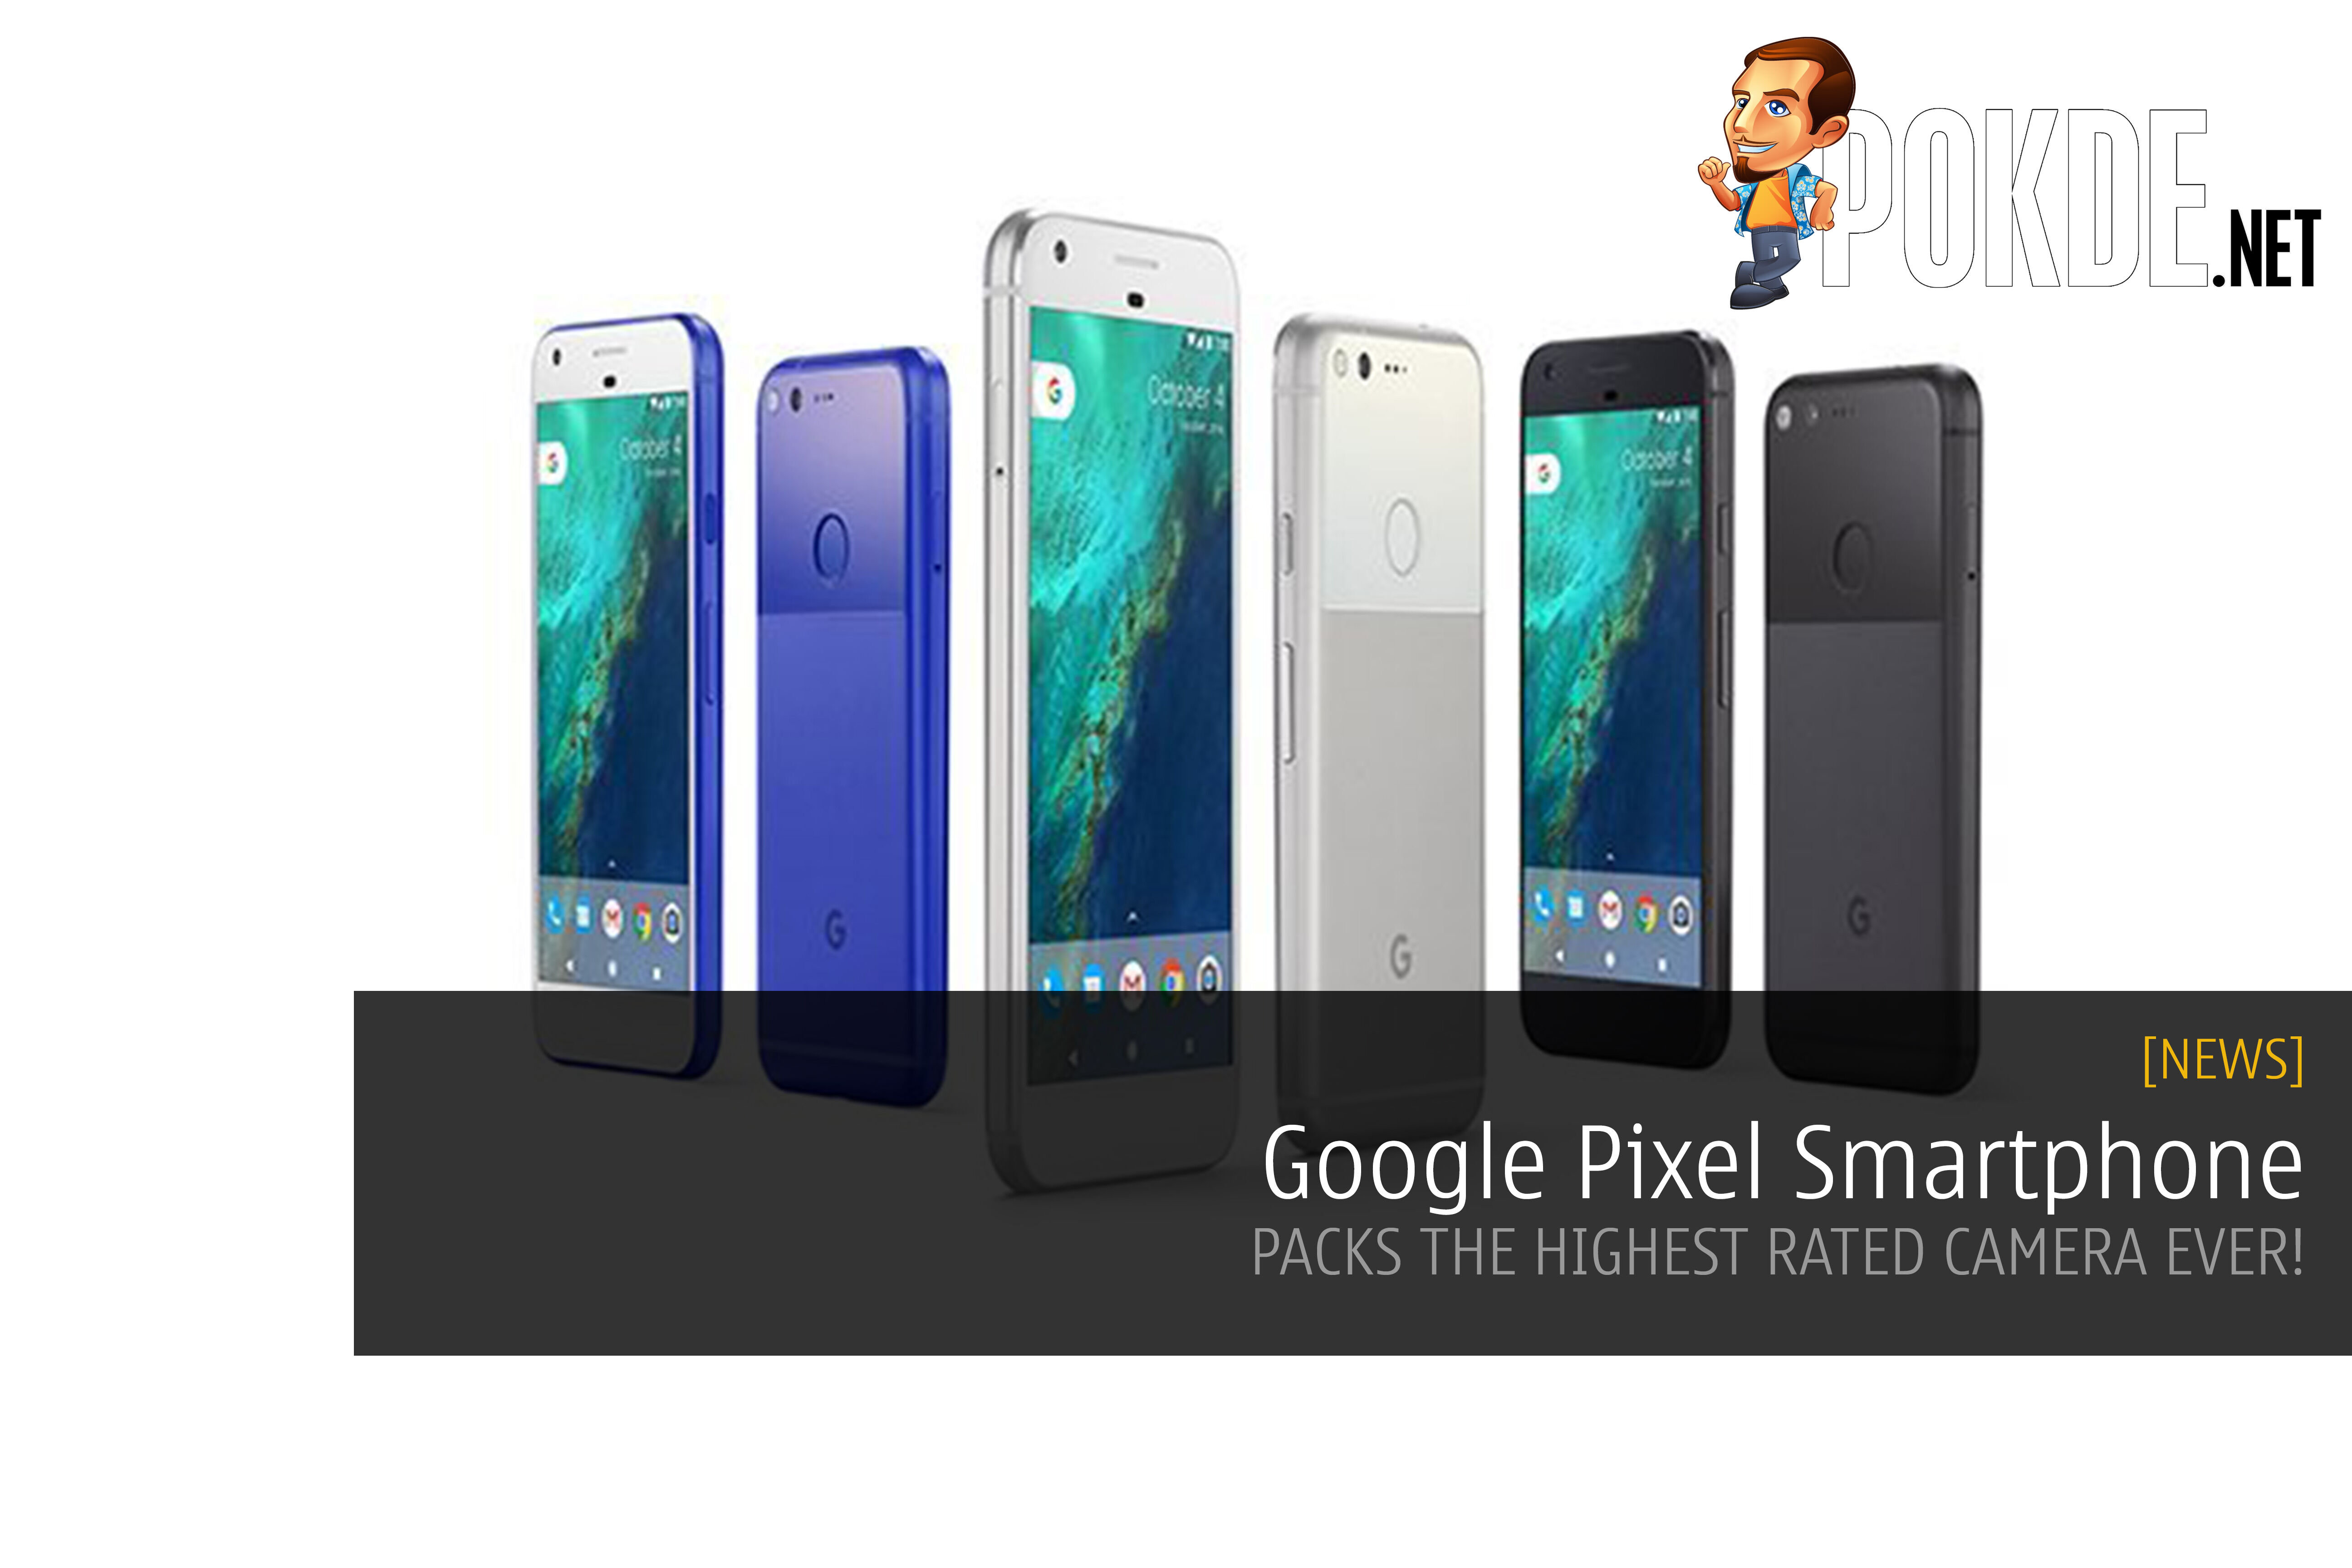 """Google Pixel smartphone """"made by Google"""" packs the highest rated camera ever 18"""